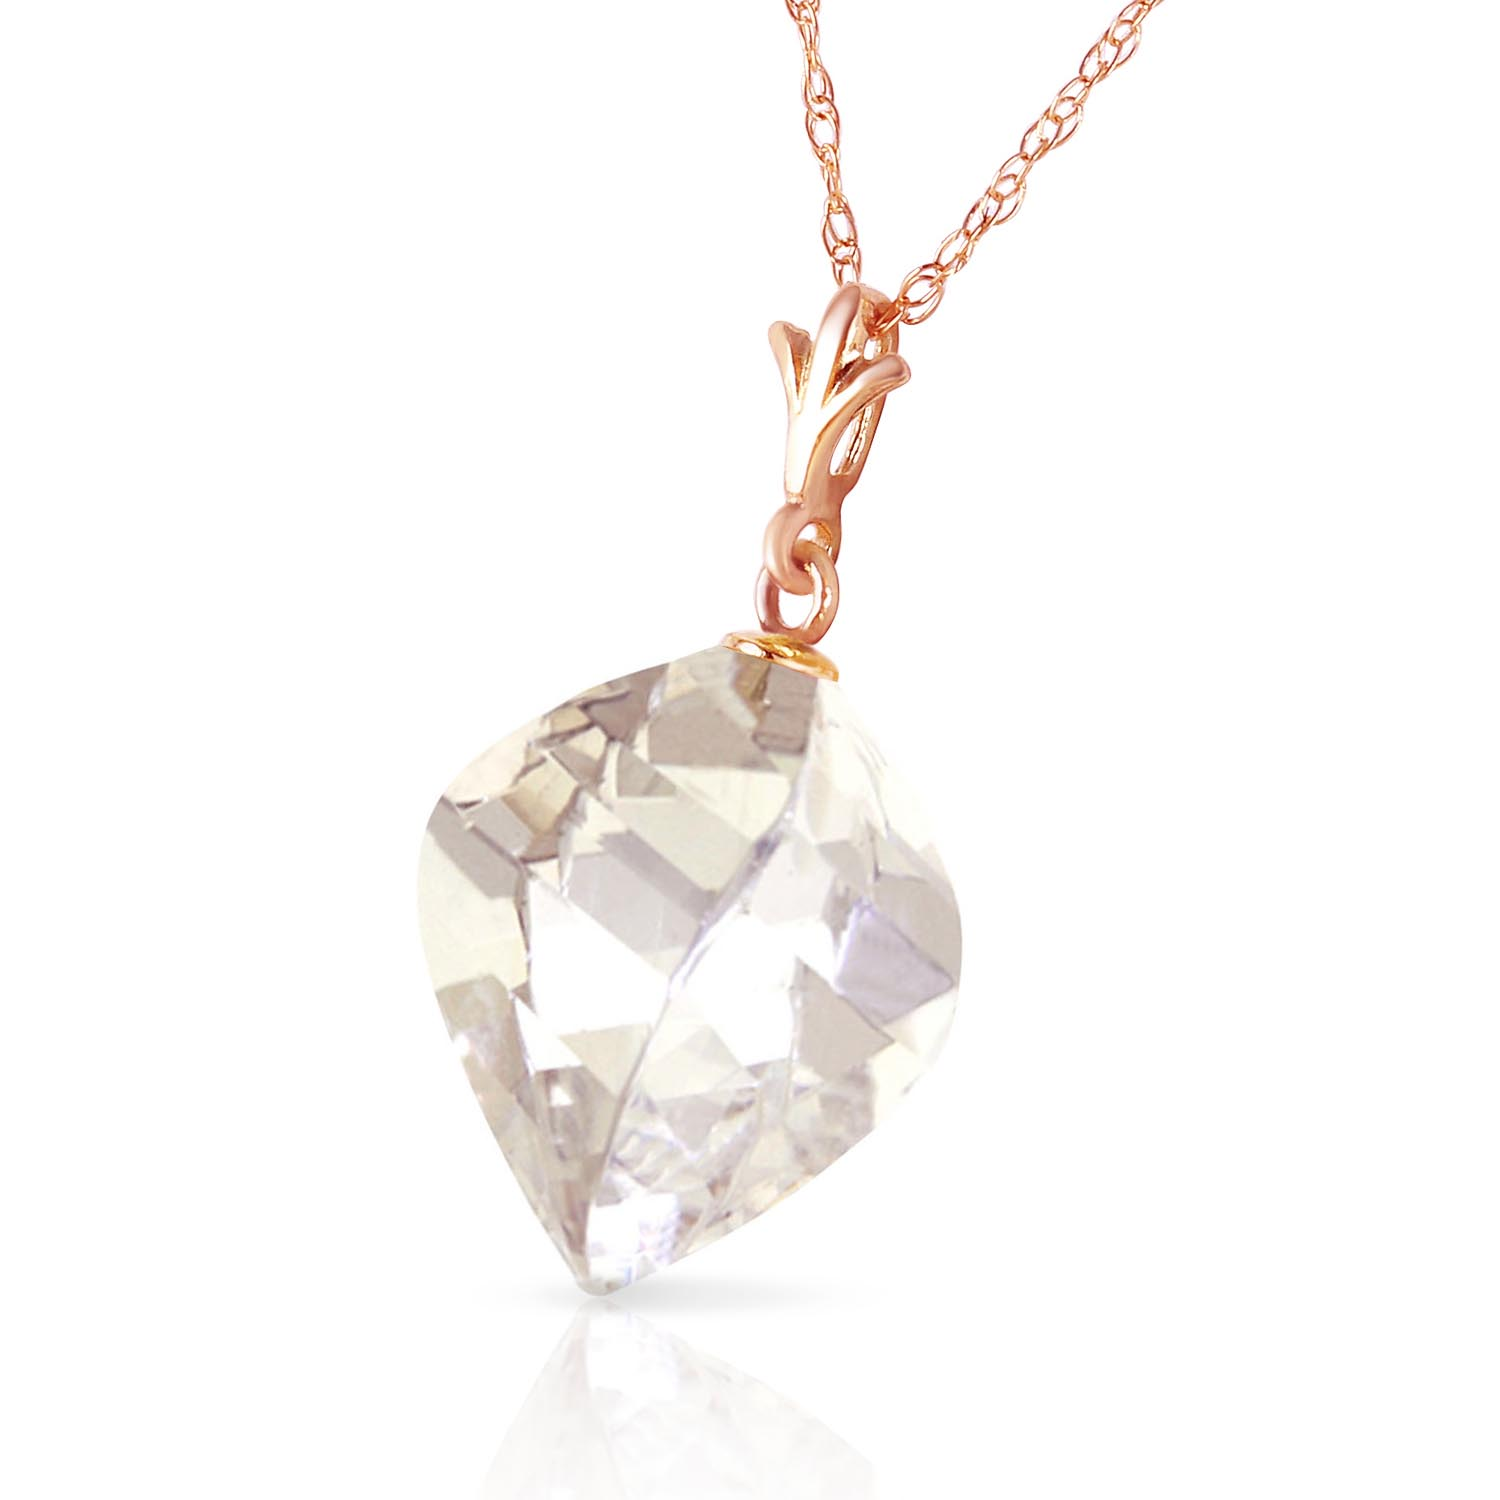 White Topaz Briolette Pendant Necklace 12.8ct in 14K Rose Gold